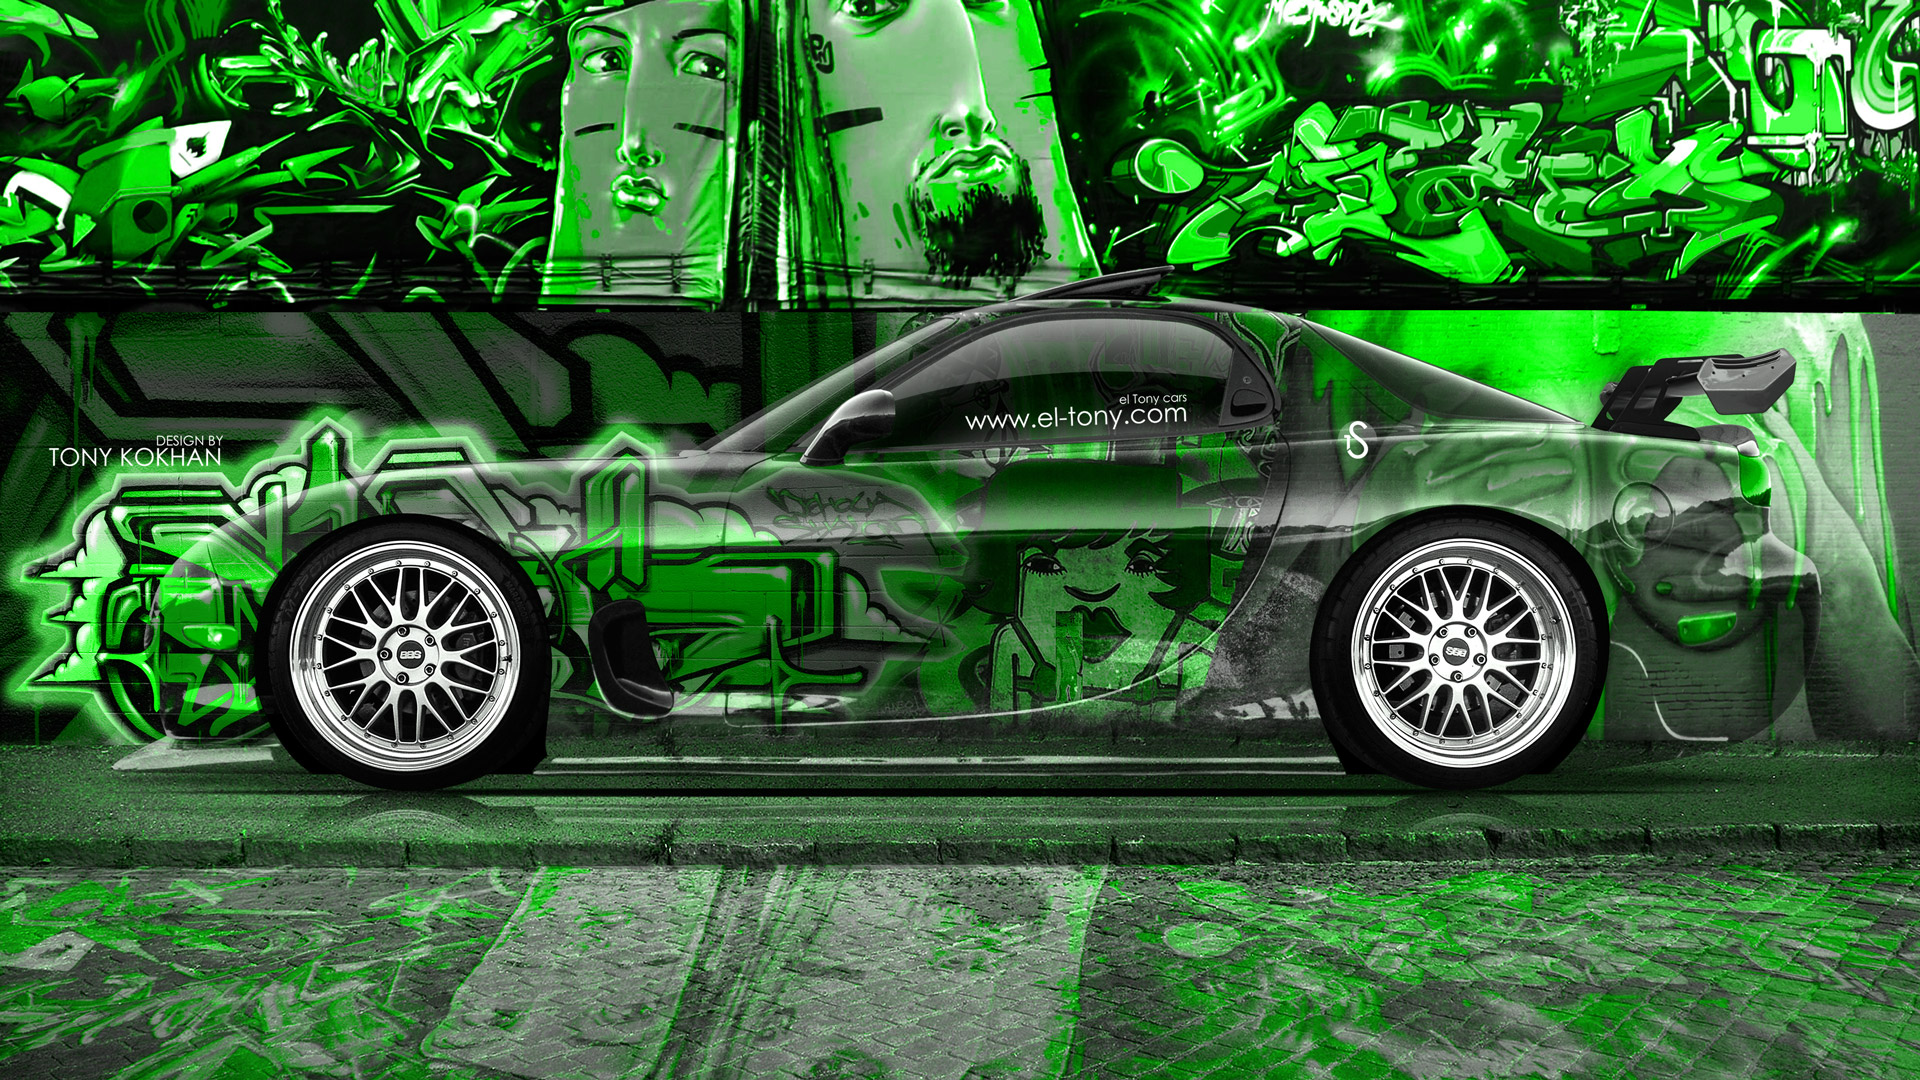 Mazda Rx7 Jdm Side Crystal Graffiti Car 2014 El Tony